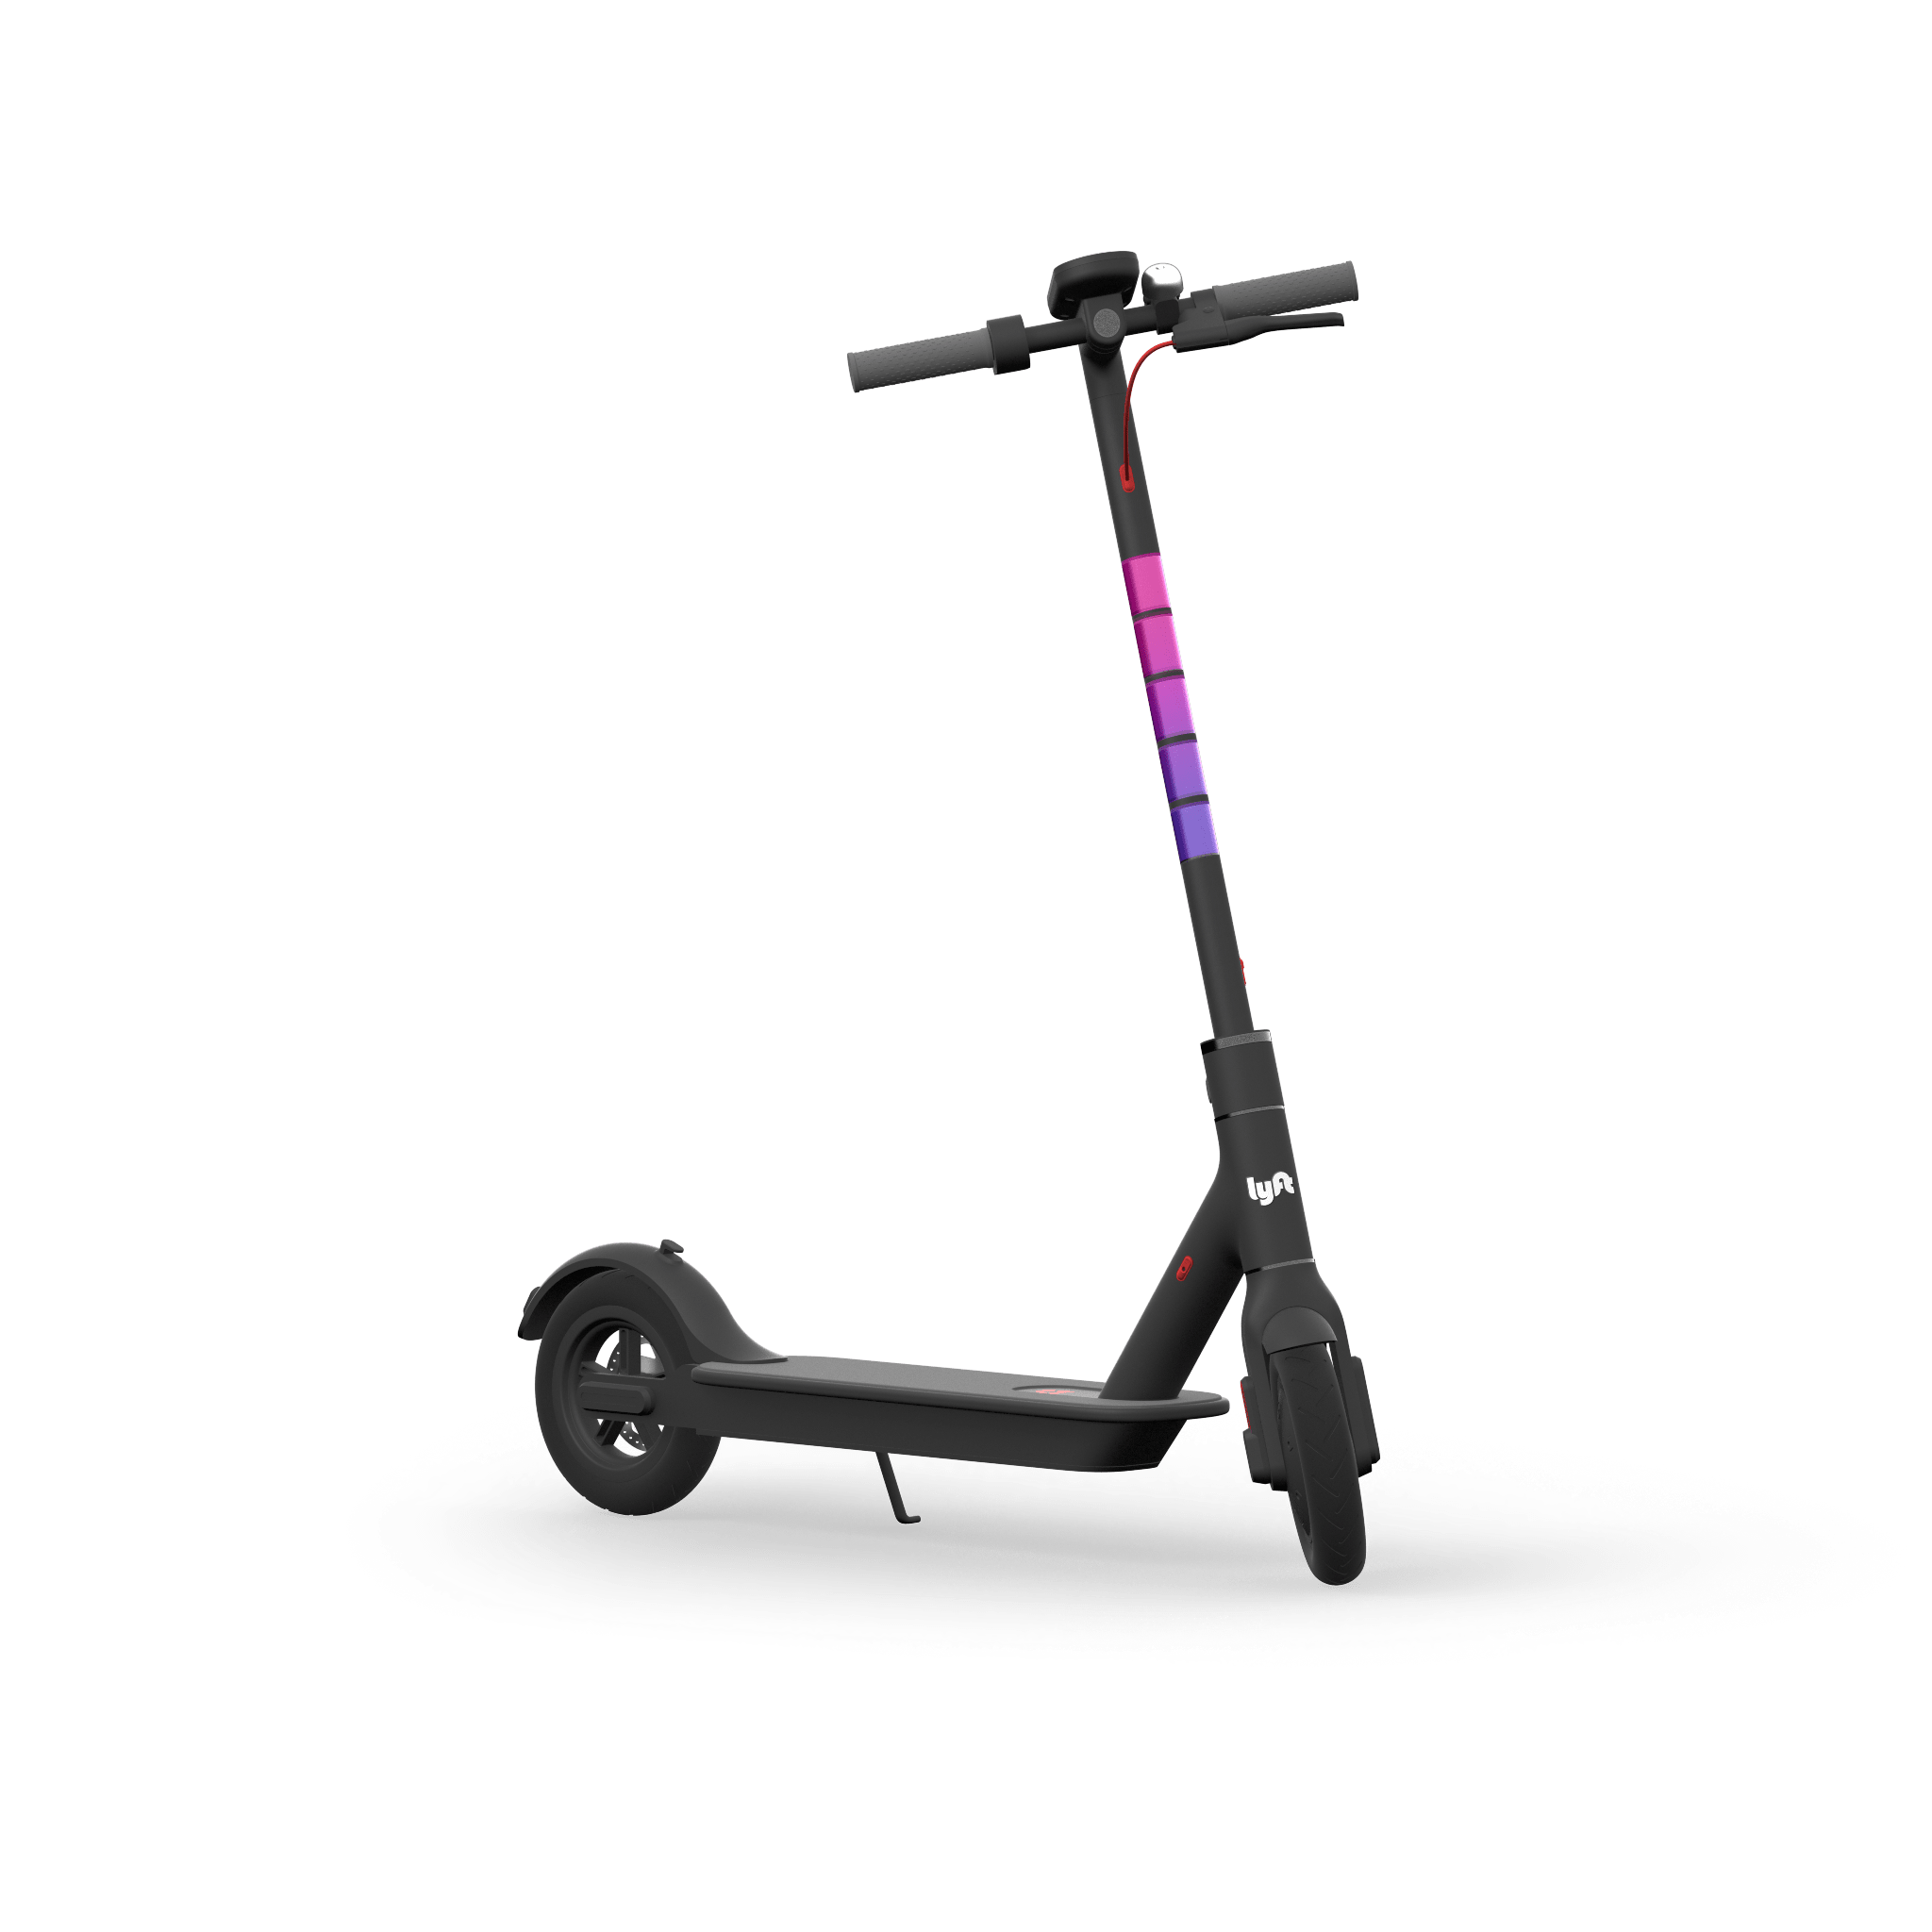 Wheel transparent scooter. Lyft scooters